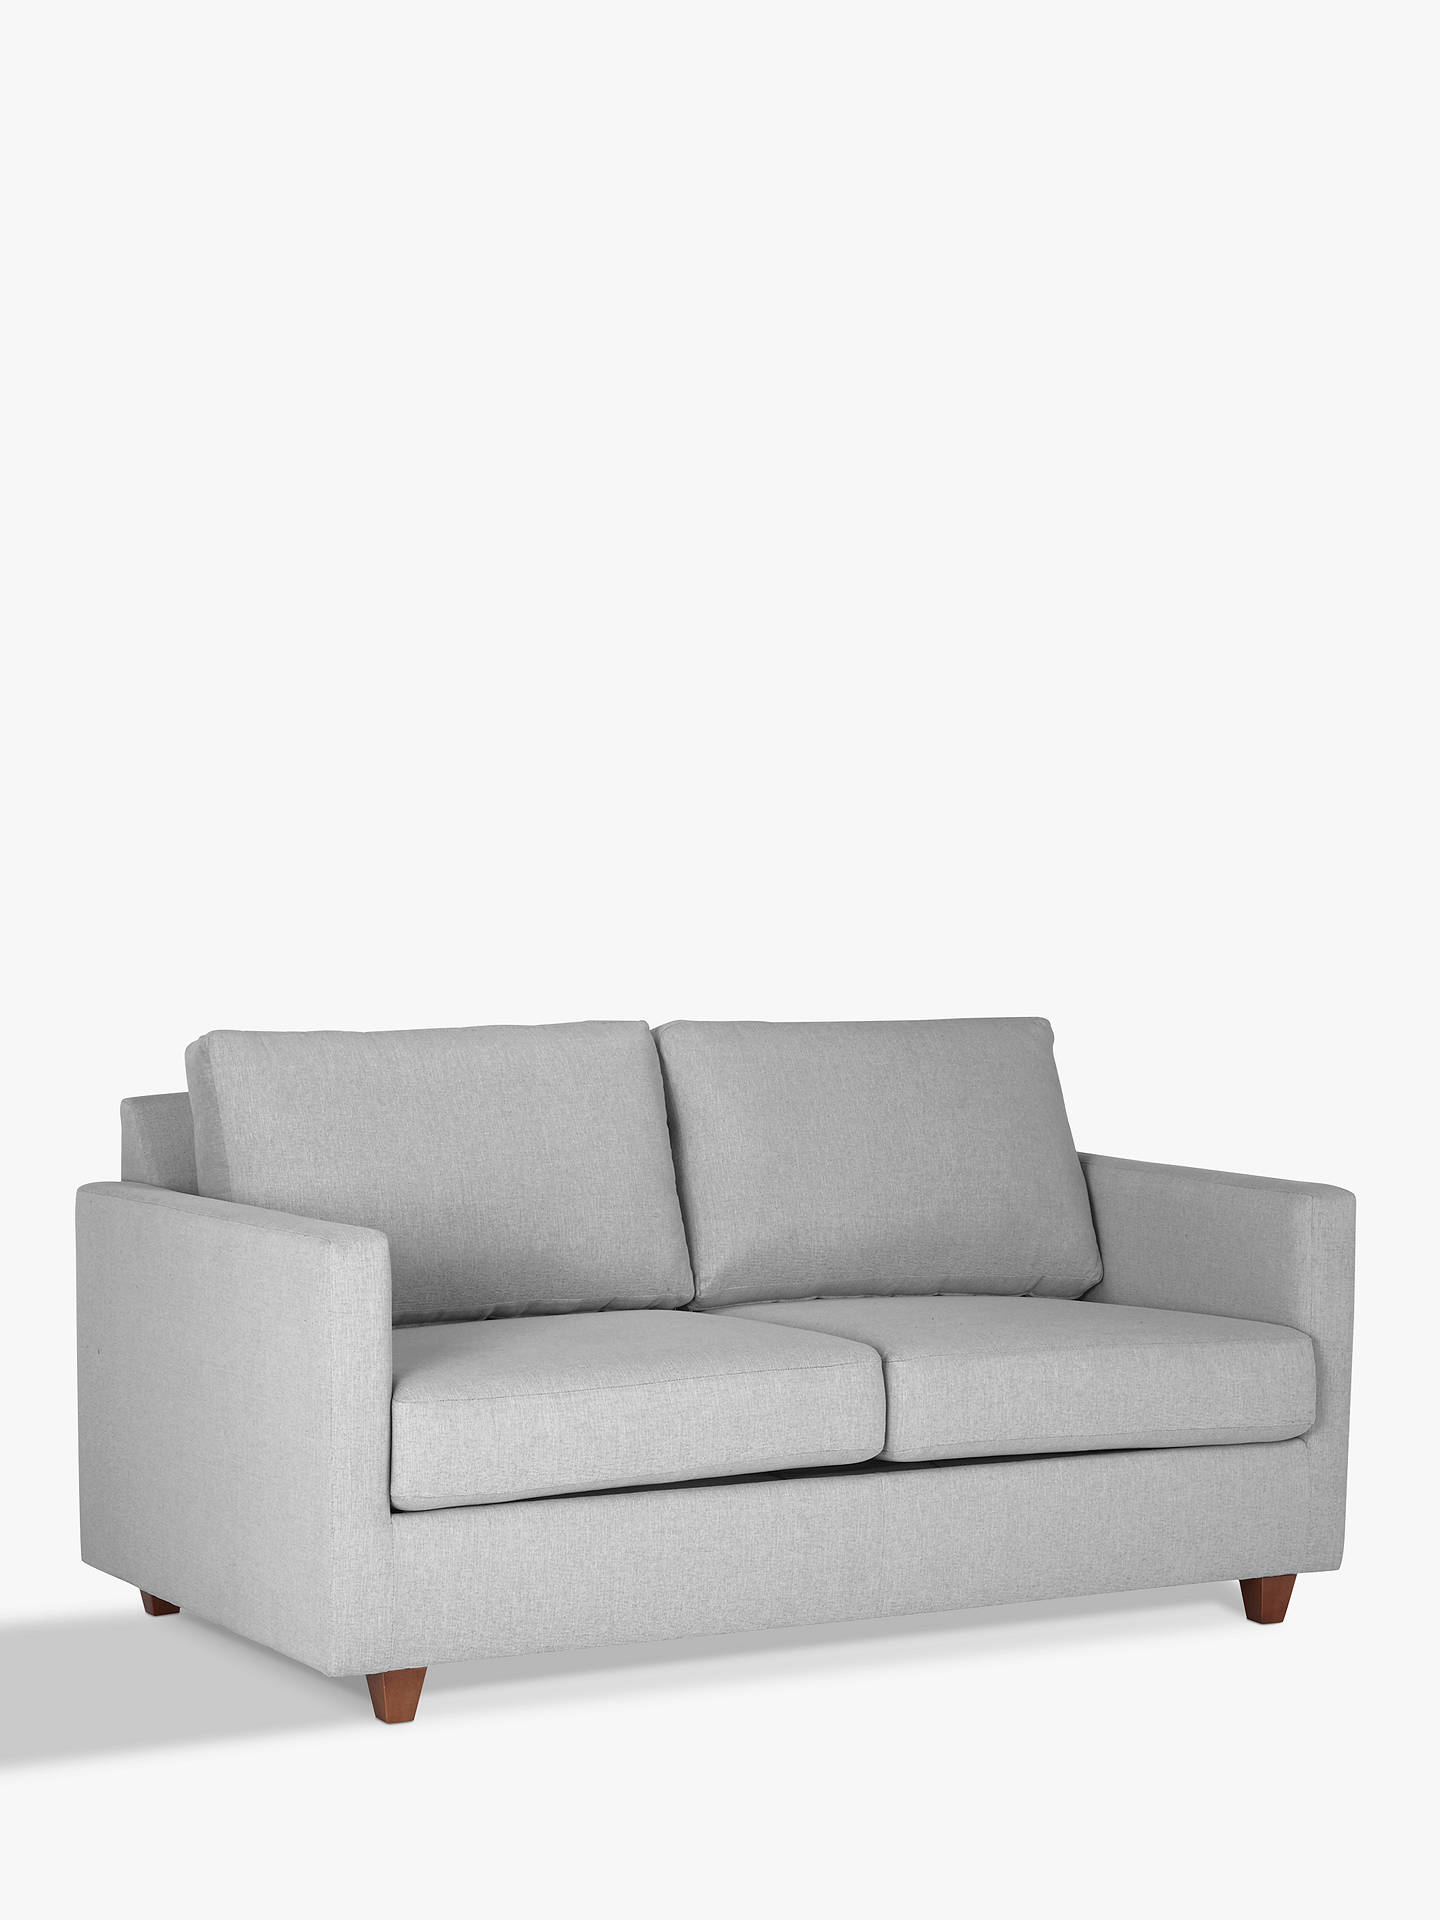 John Lewis Partners Barlow Large 3 Seater Sofa Bed With Pocket